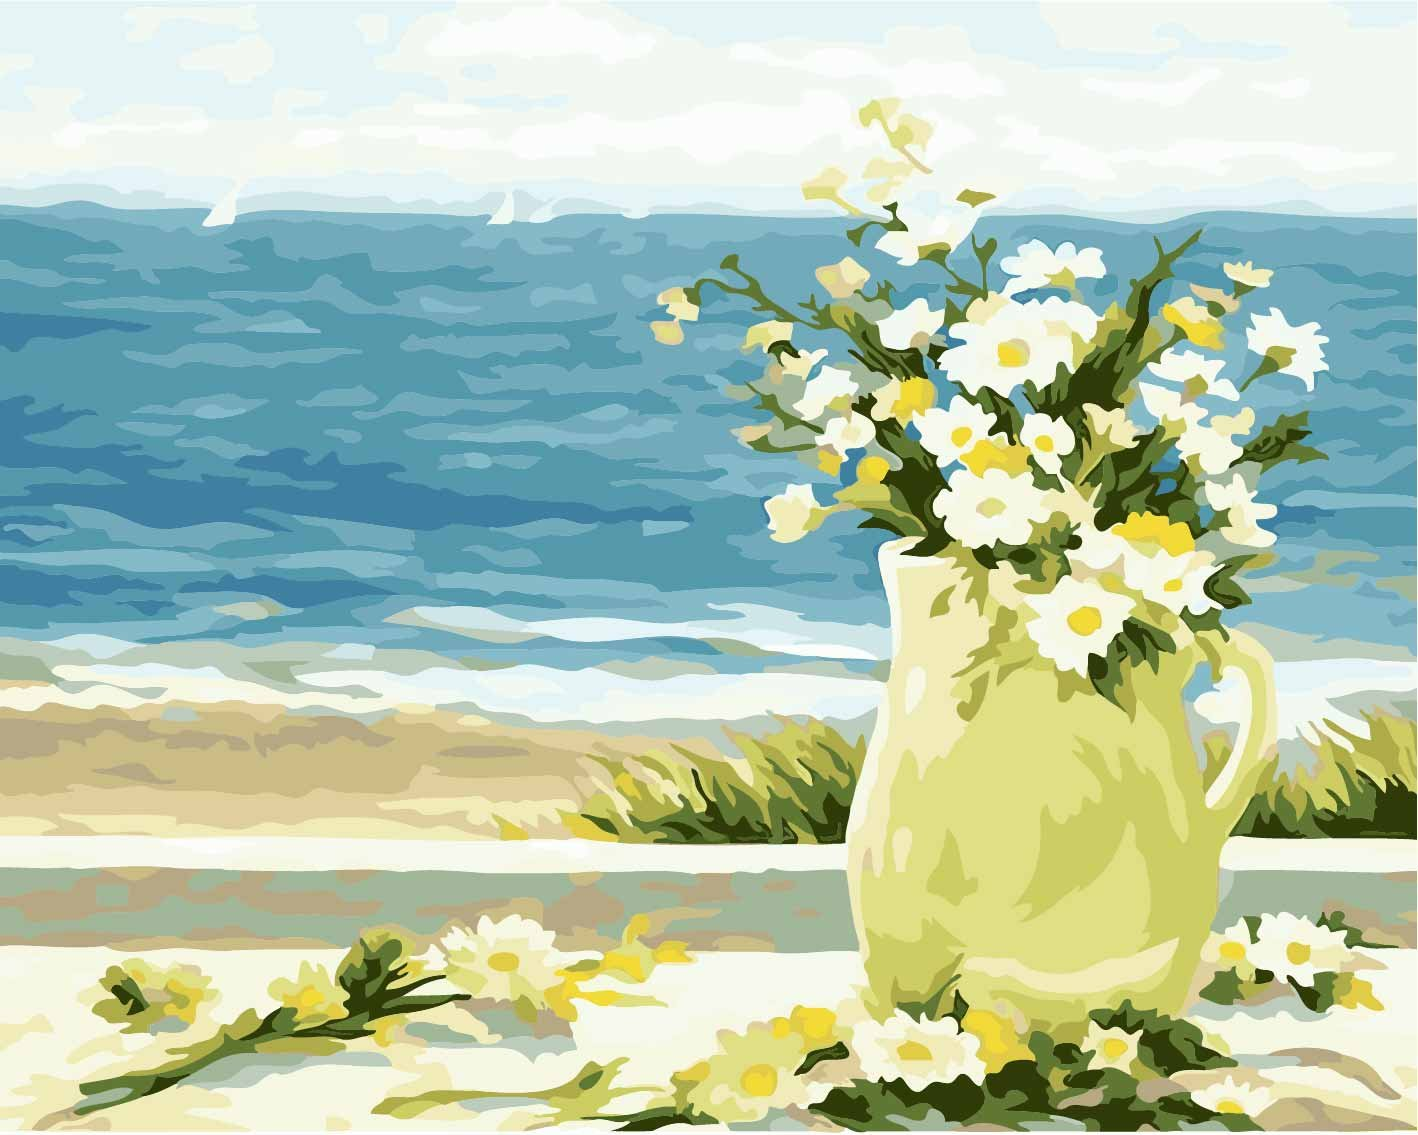 DIY Pre-Printed Canvas Oil Painting Gift for Adults Kids Paint by Number Kits With Wooden Frame for Home Decor - Seagull and Sea 16*20 inch NCFDBL